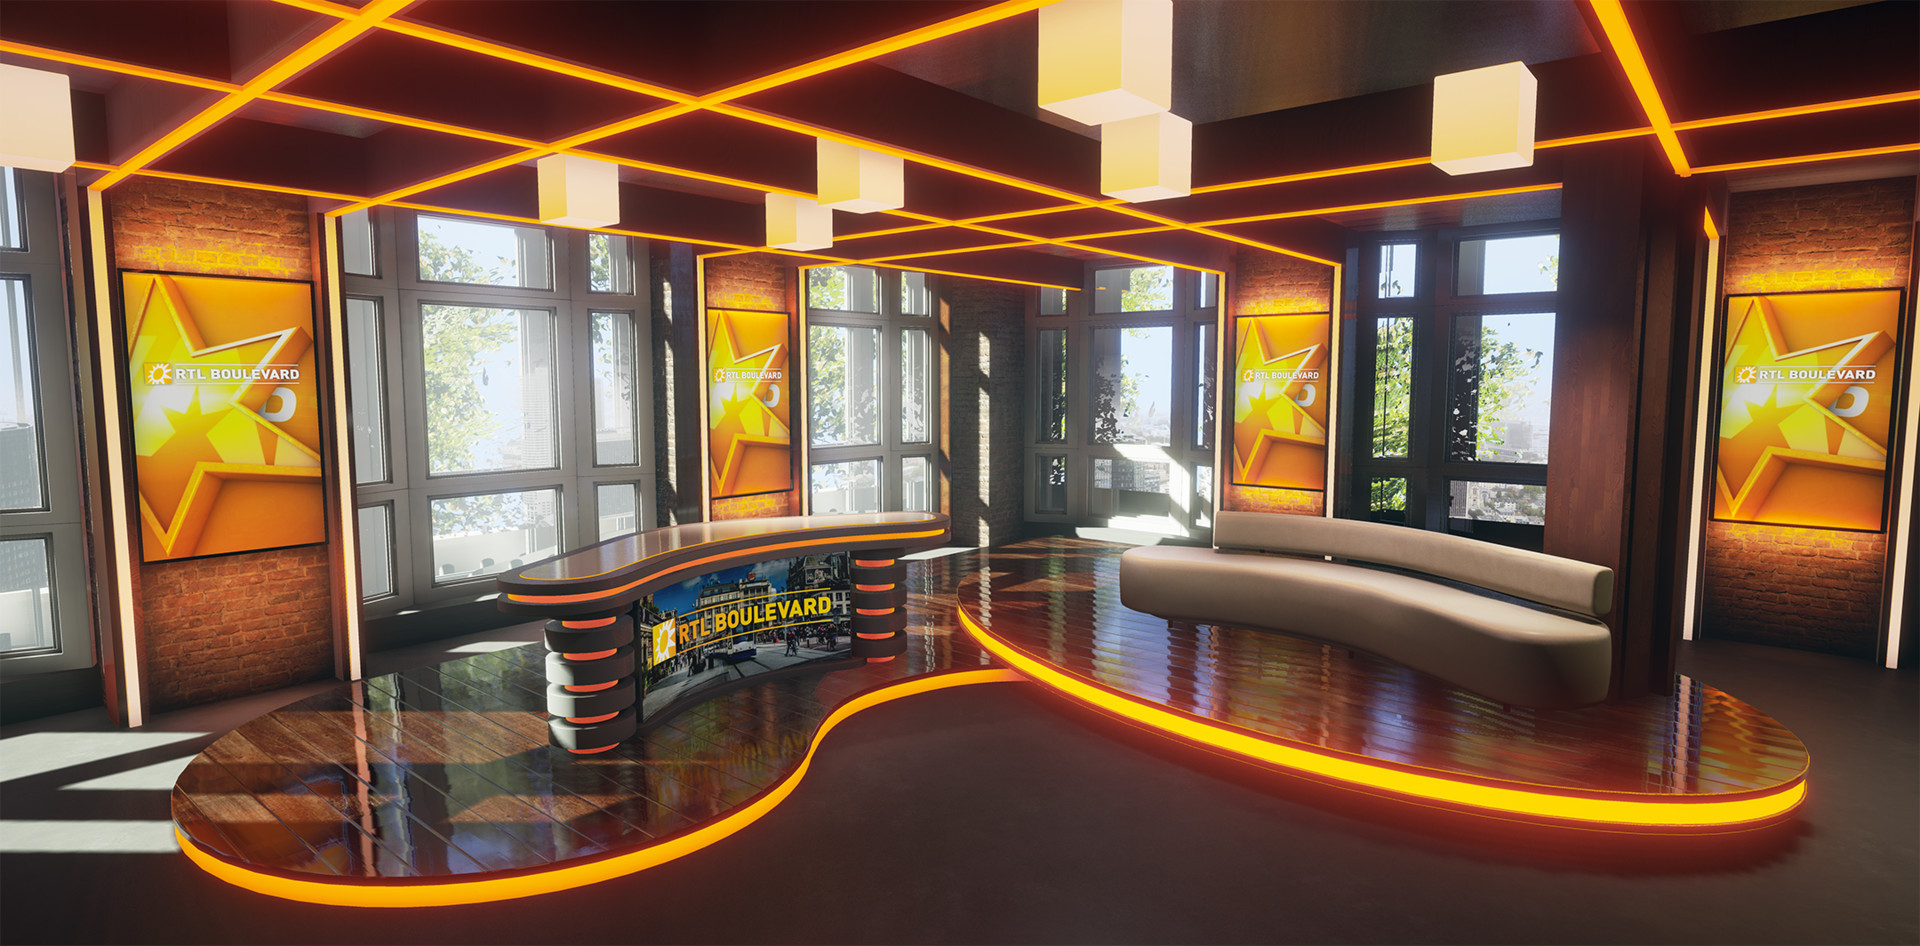 Artstation unreal engine 4 rendering steven loupatty textureshadinglightingblueprintfuntional in unreal engine 4 malvernweather Image collections